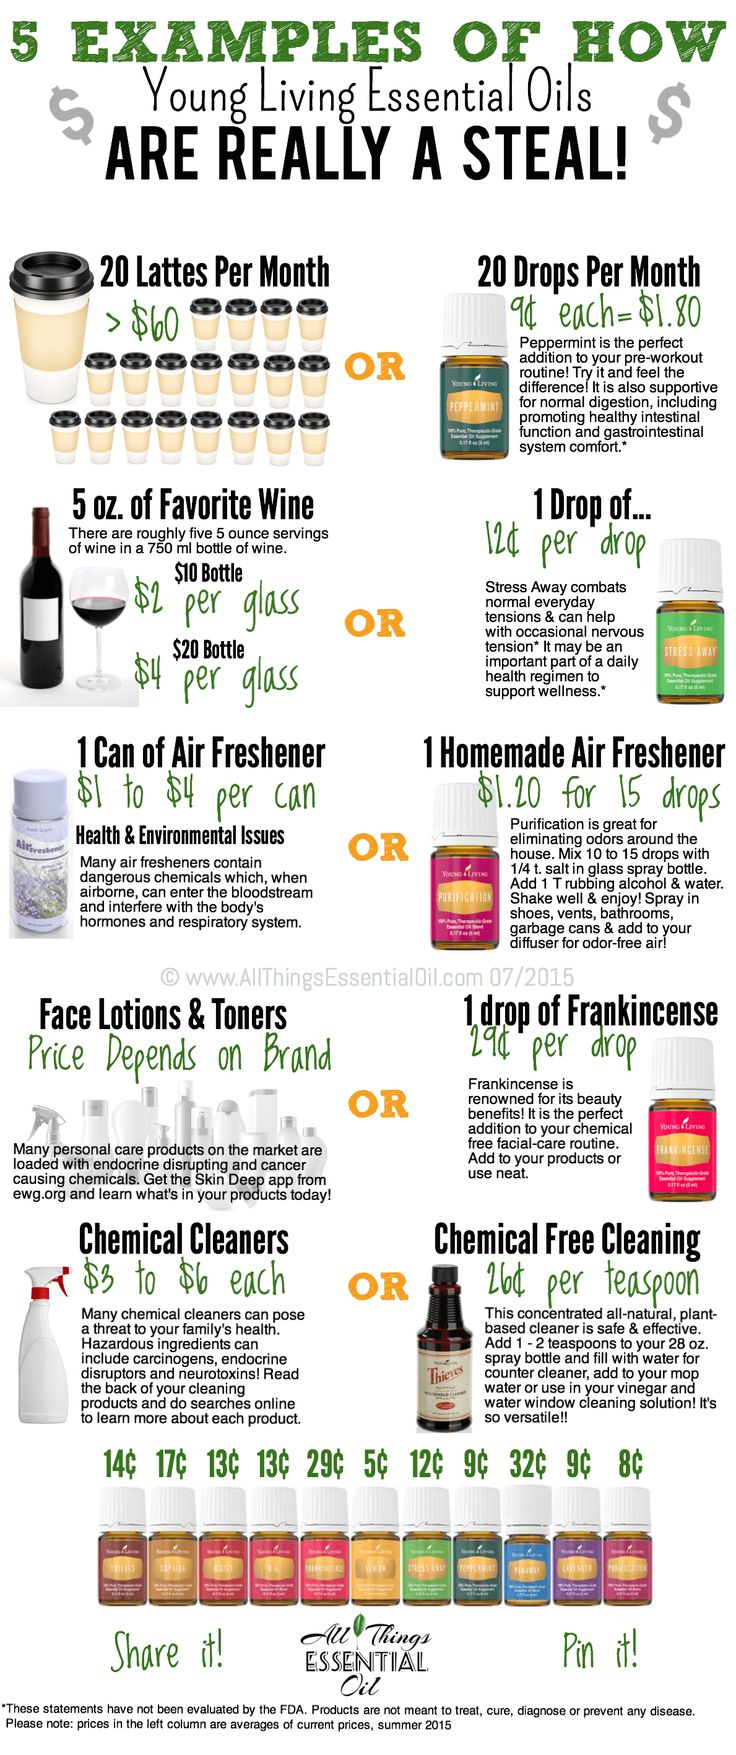 Quality essential oils from Young Living aren't as expensive as you think. Make them a true part of your lifestyle and you'll experience the wellness benefits along with the savings! Click to learn more about how they save my family money. www.AllThingsEssentialOil.com